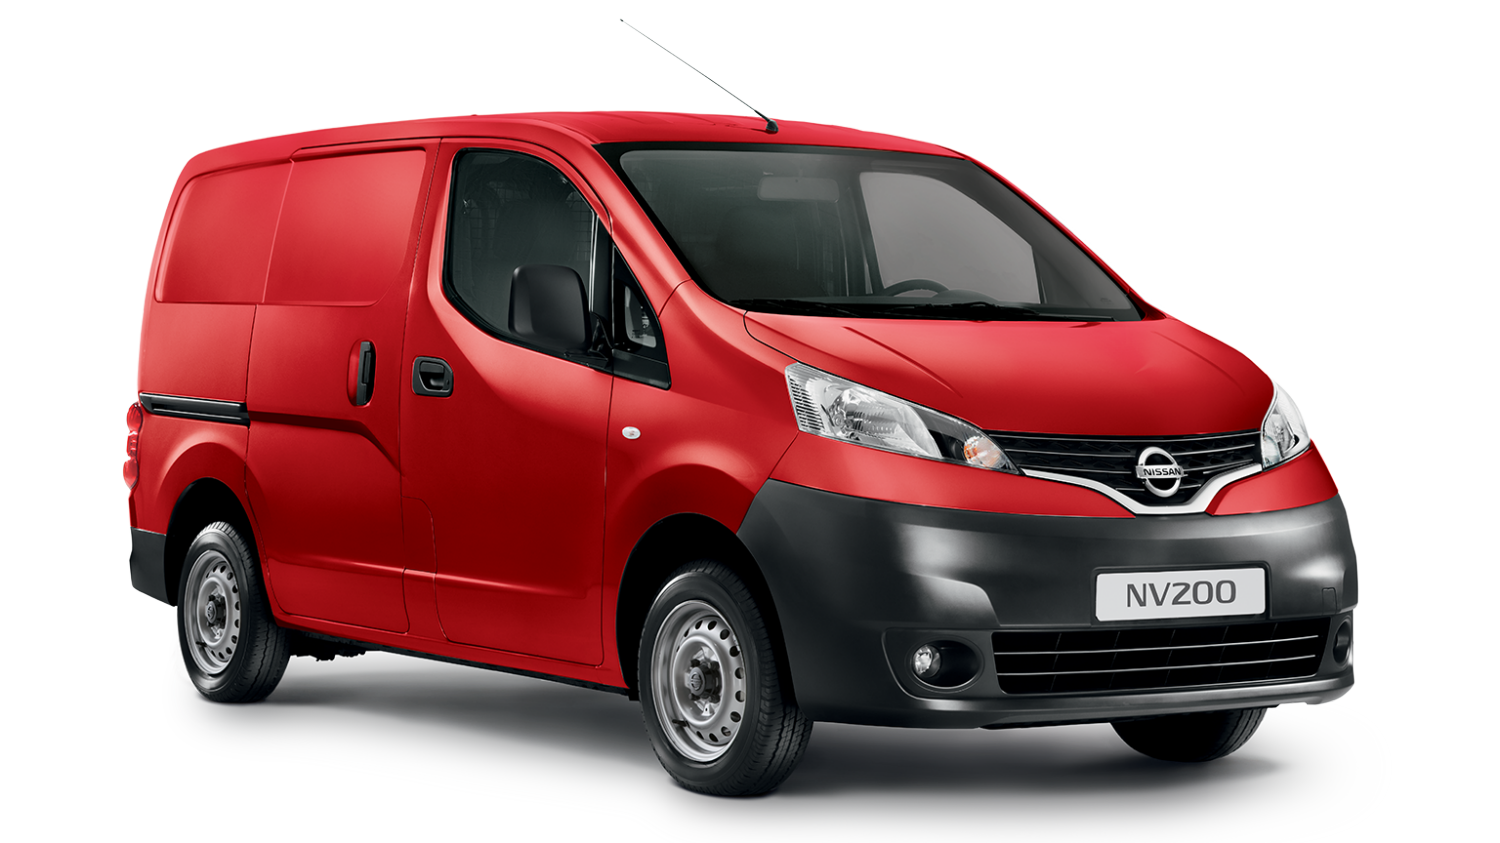 NV200 - Finansiel leasing